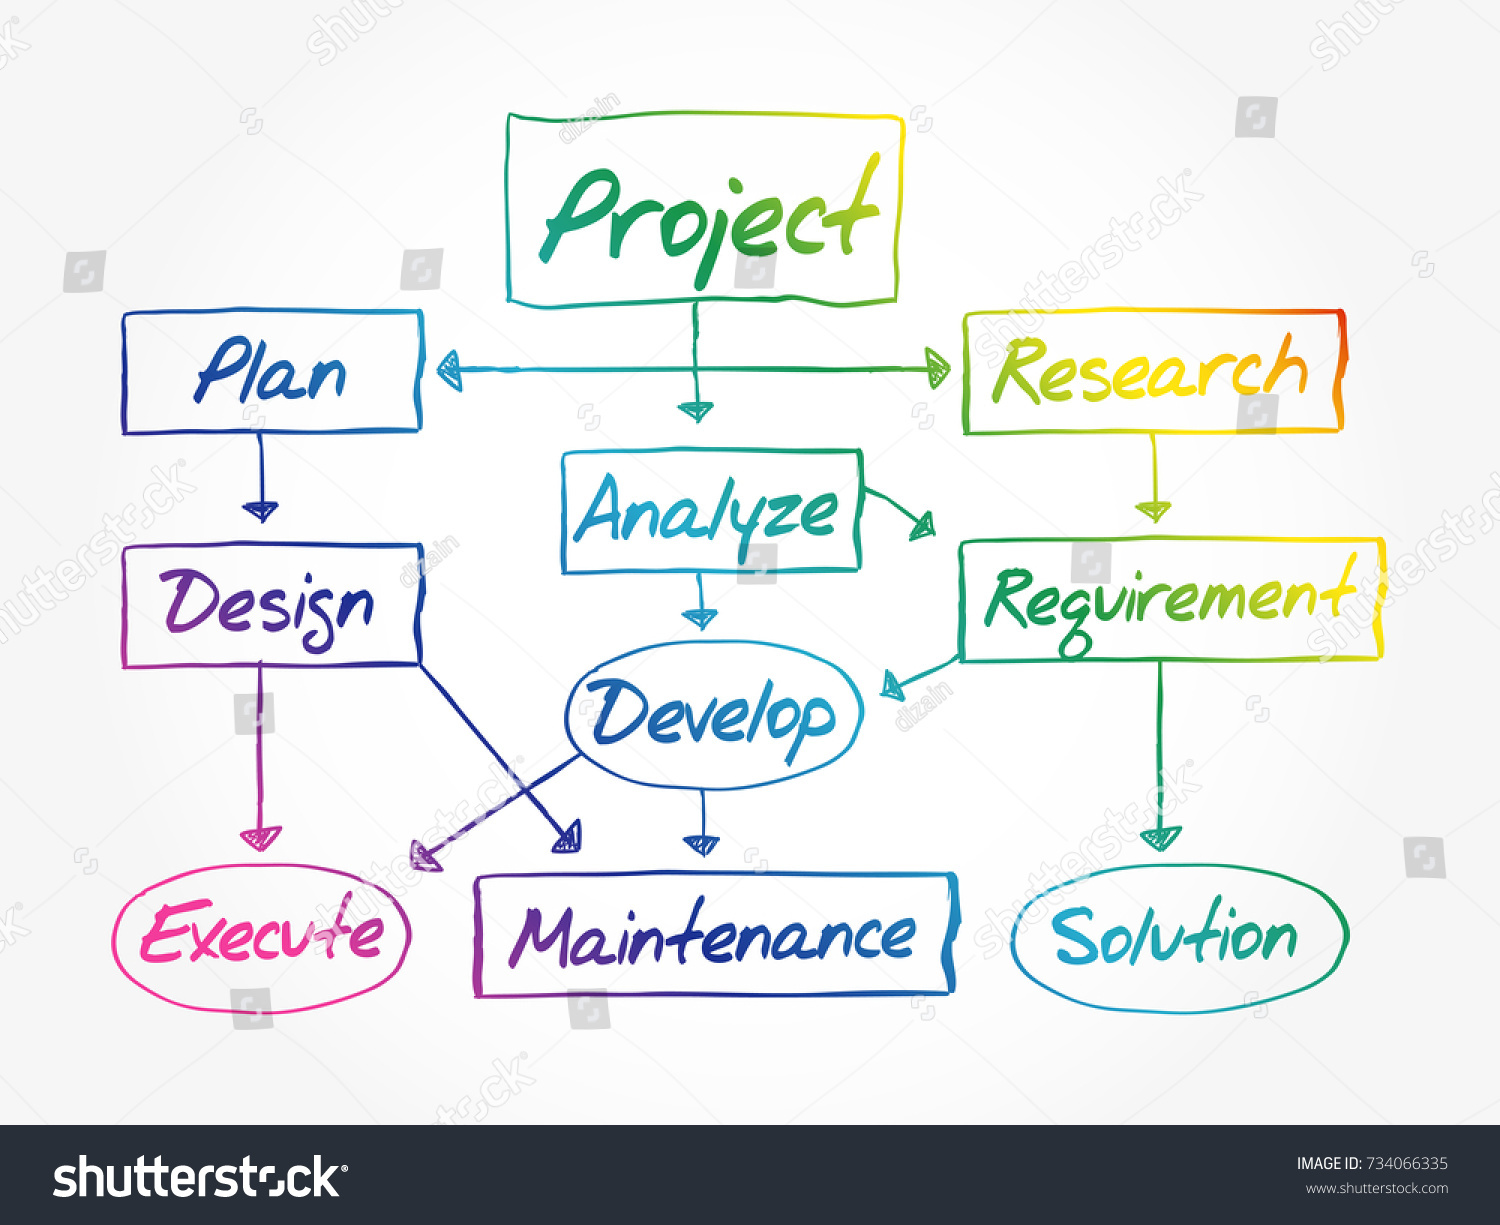 Hand drawn flow chart project development stock vector 734066335 hand drawn flow chart for project development diagram presentation business concept pooptronica Image collections